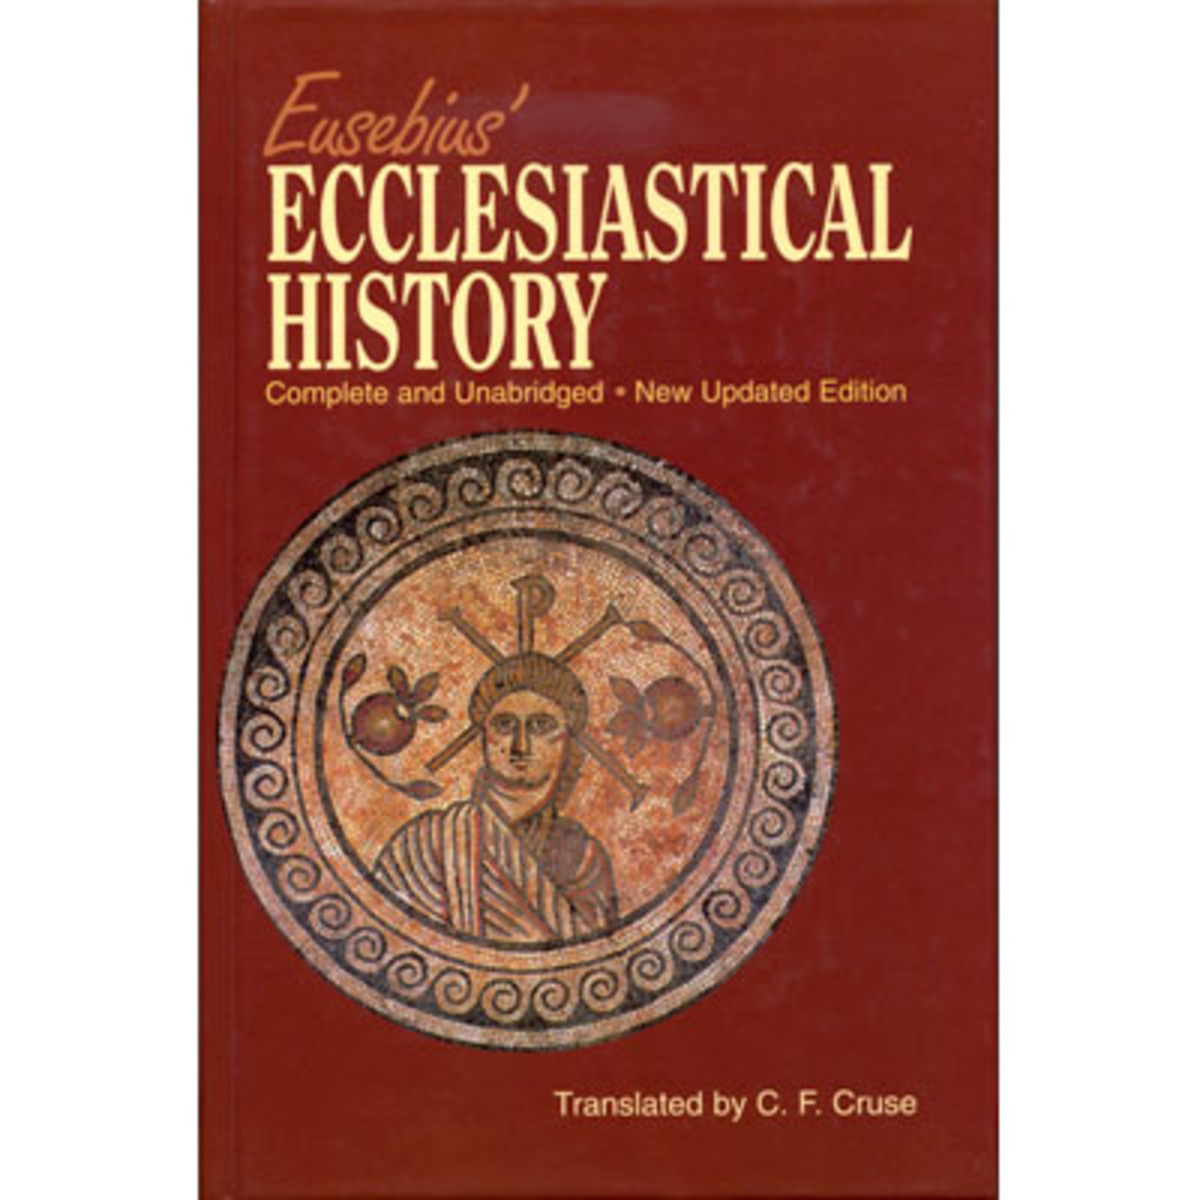 ECCLESIASTICAL HISTORY BY EUSEBIUS IS STILL IN PRINT TODAY